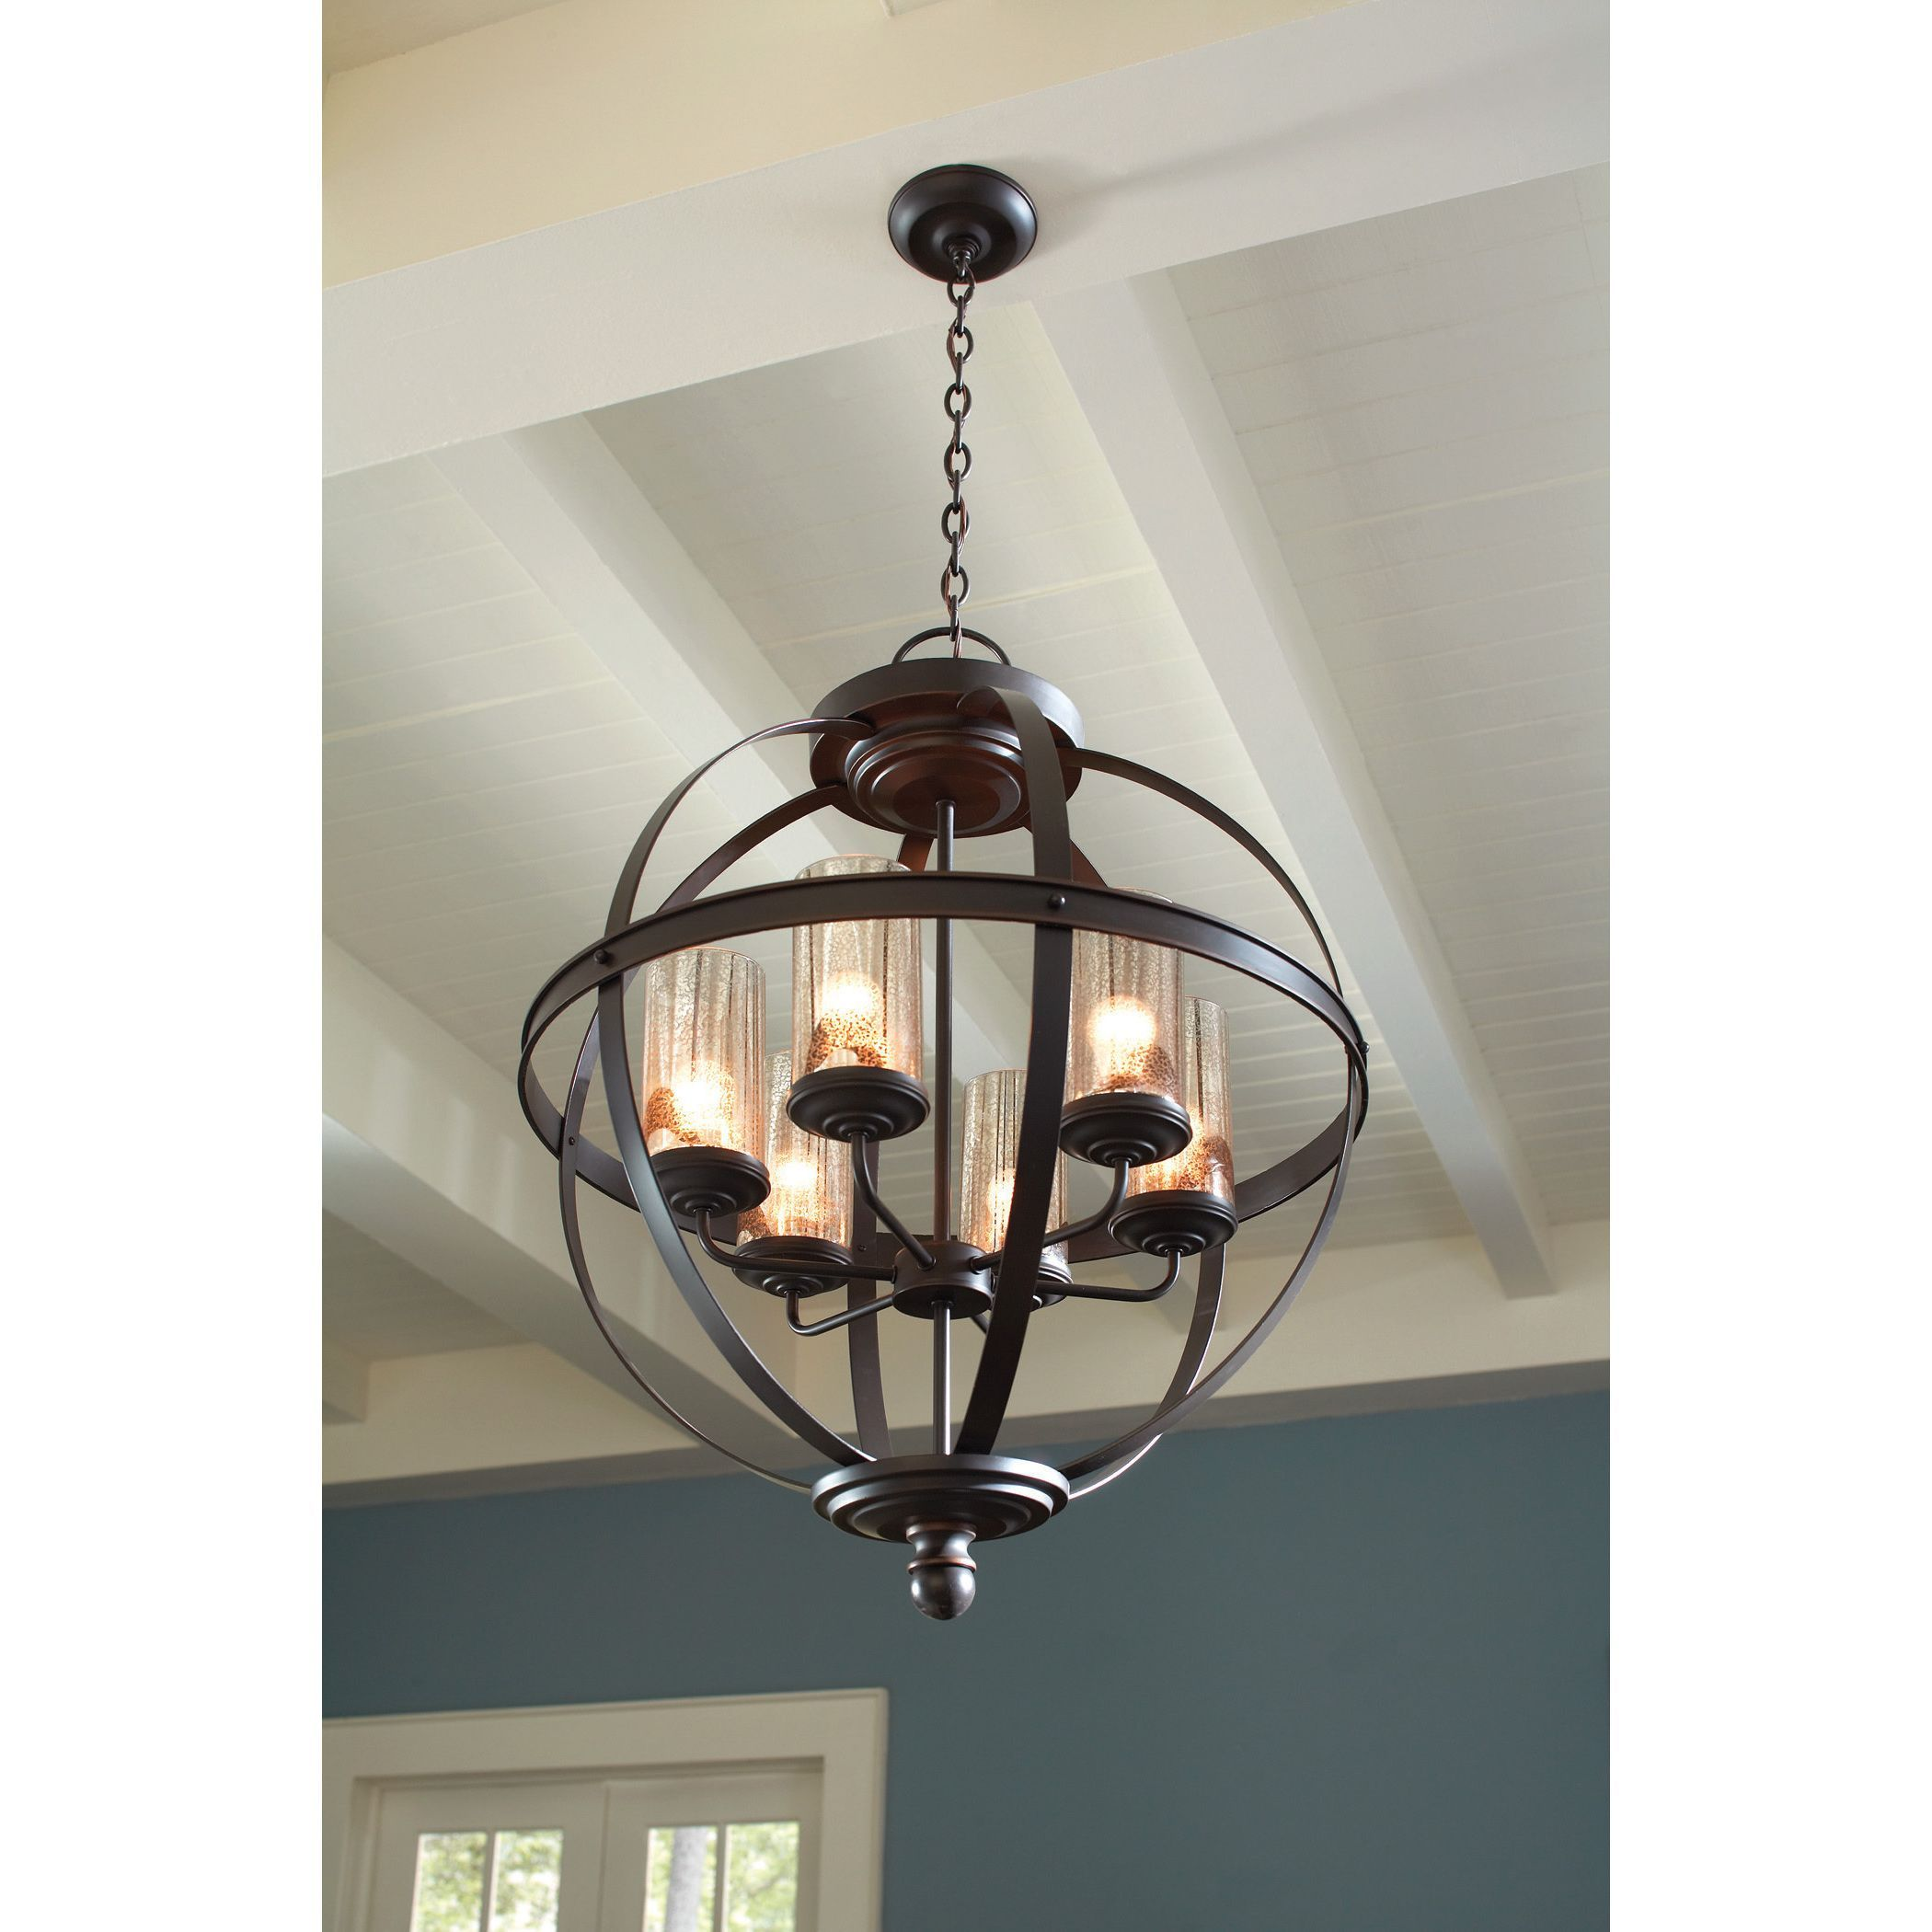 Sea gull lighting sfera 6 light autumn bronze chandelier autumn shop sea gull lighting sfera chandelier at lowe canada find our selection of chandeliers at the lowest price guaranteed with price match off arubaitofo Images